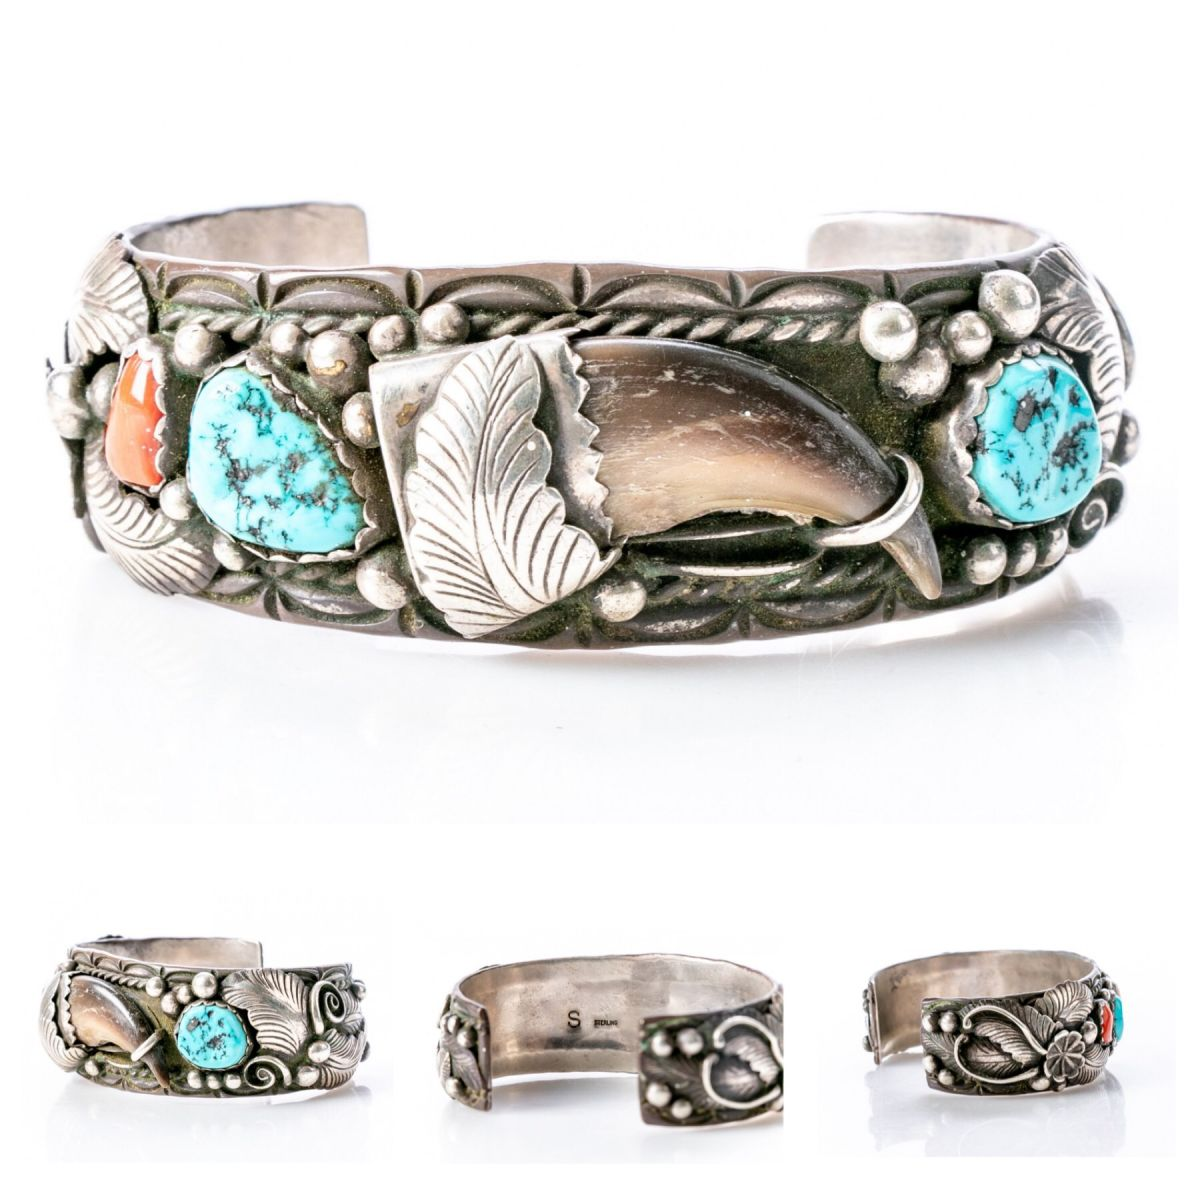 Navajo Cuff Bracelet with Turquoise, Coral, & Bear Claw